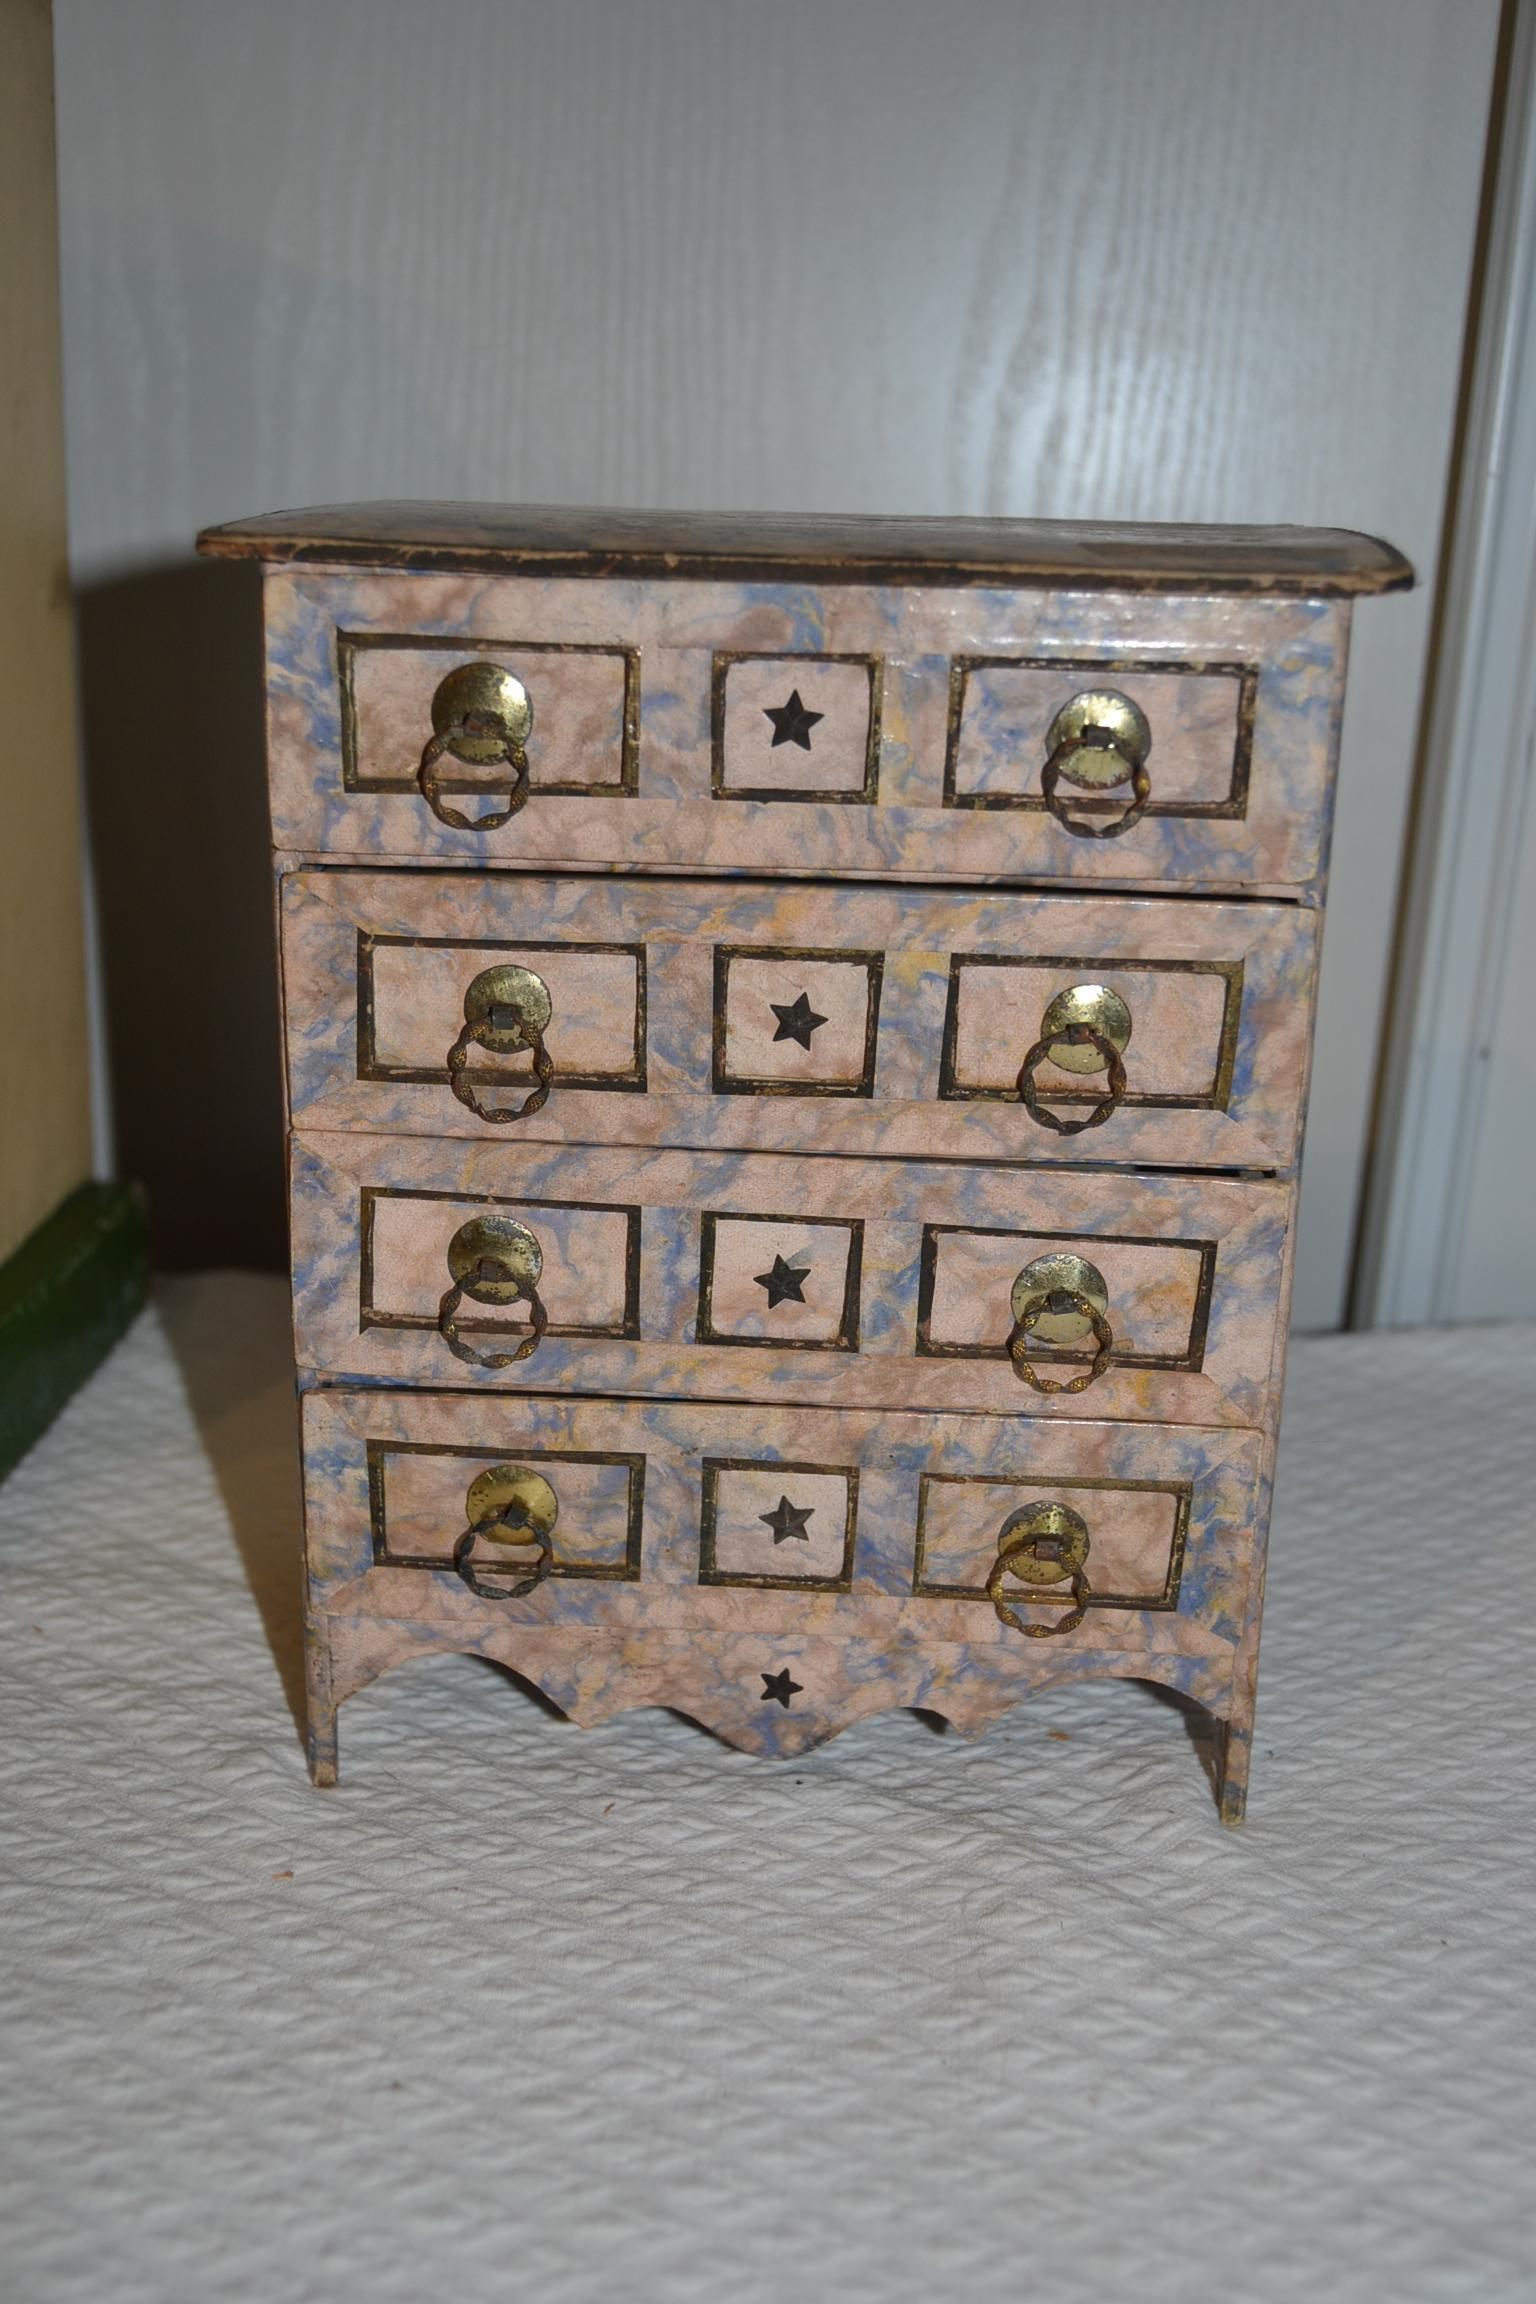 Charming chest of drawers for your fashion doll